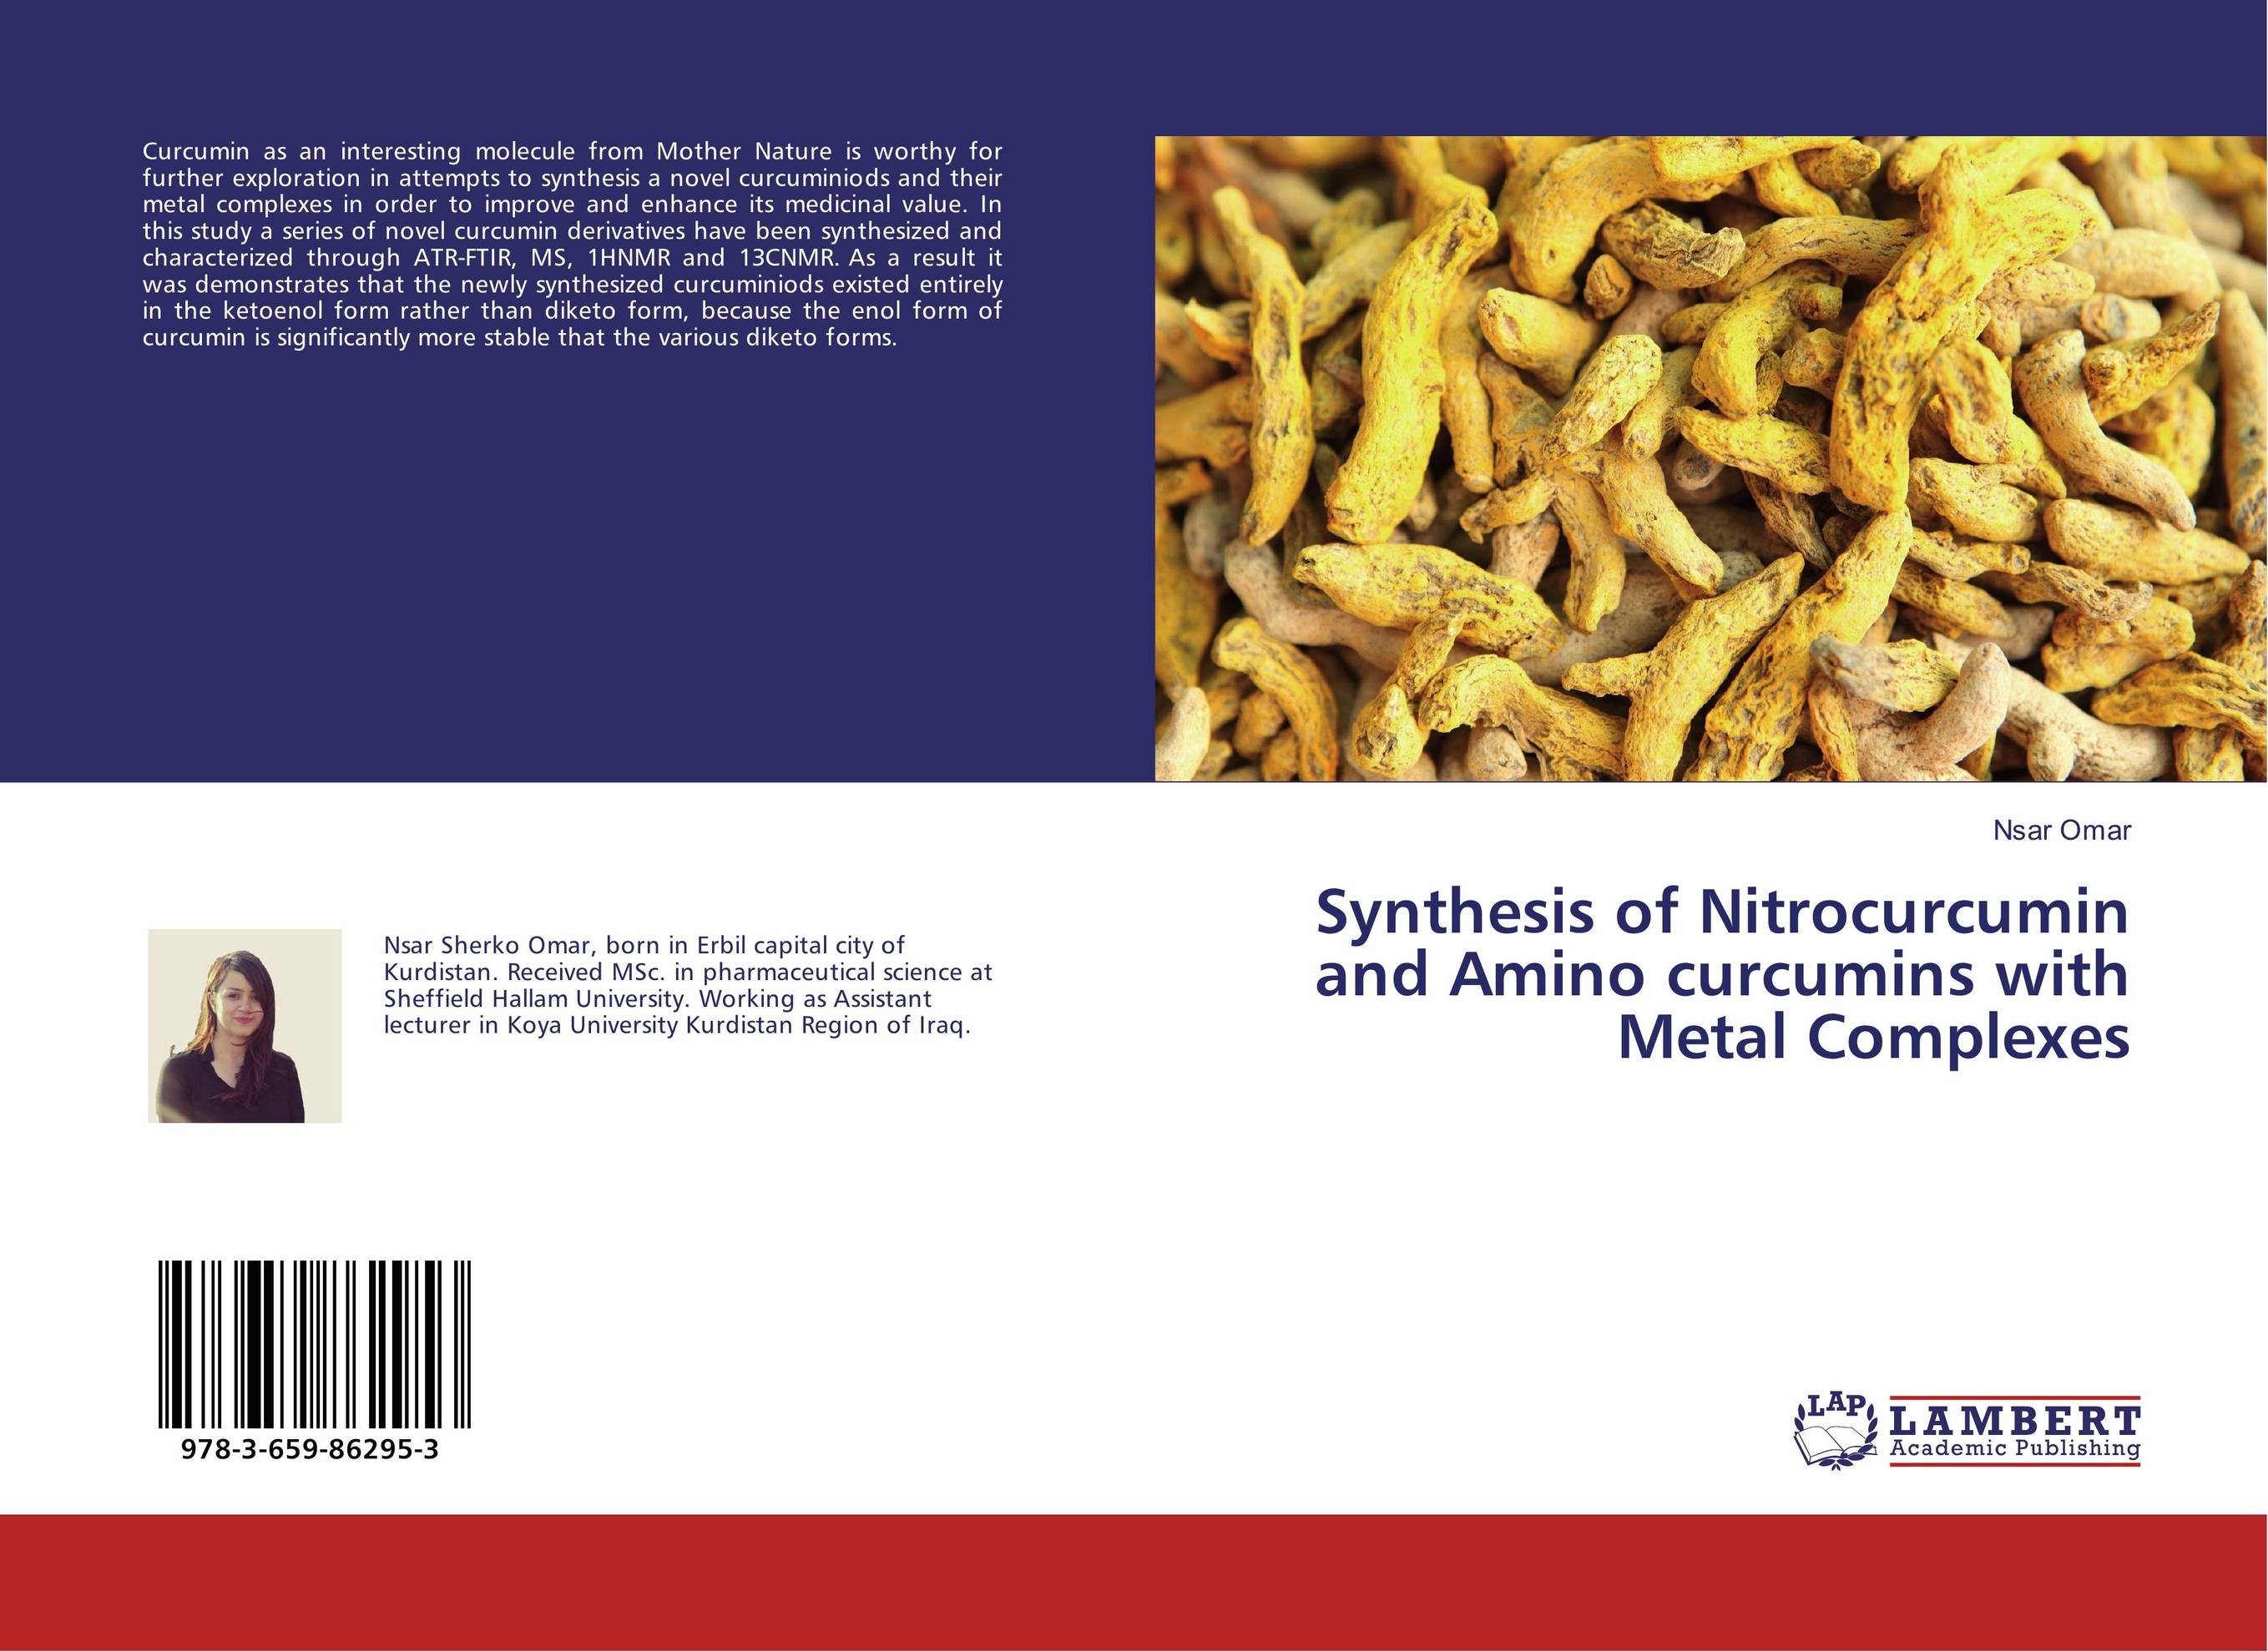 Synthesis of Nitrocurcumin and Amino curcumins with Metal Complexes novel arylpiperazines as anxiolytic agents synthesis and sar